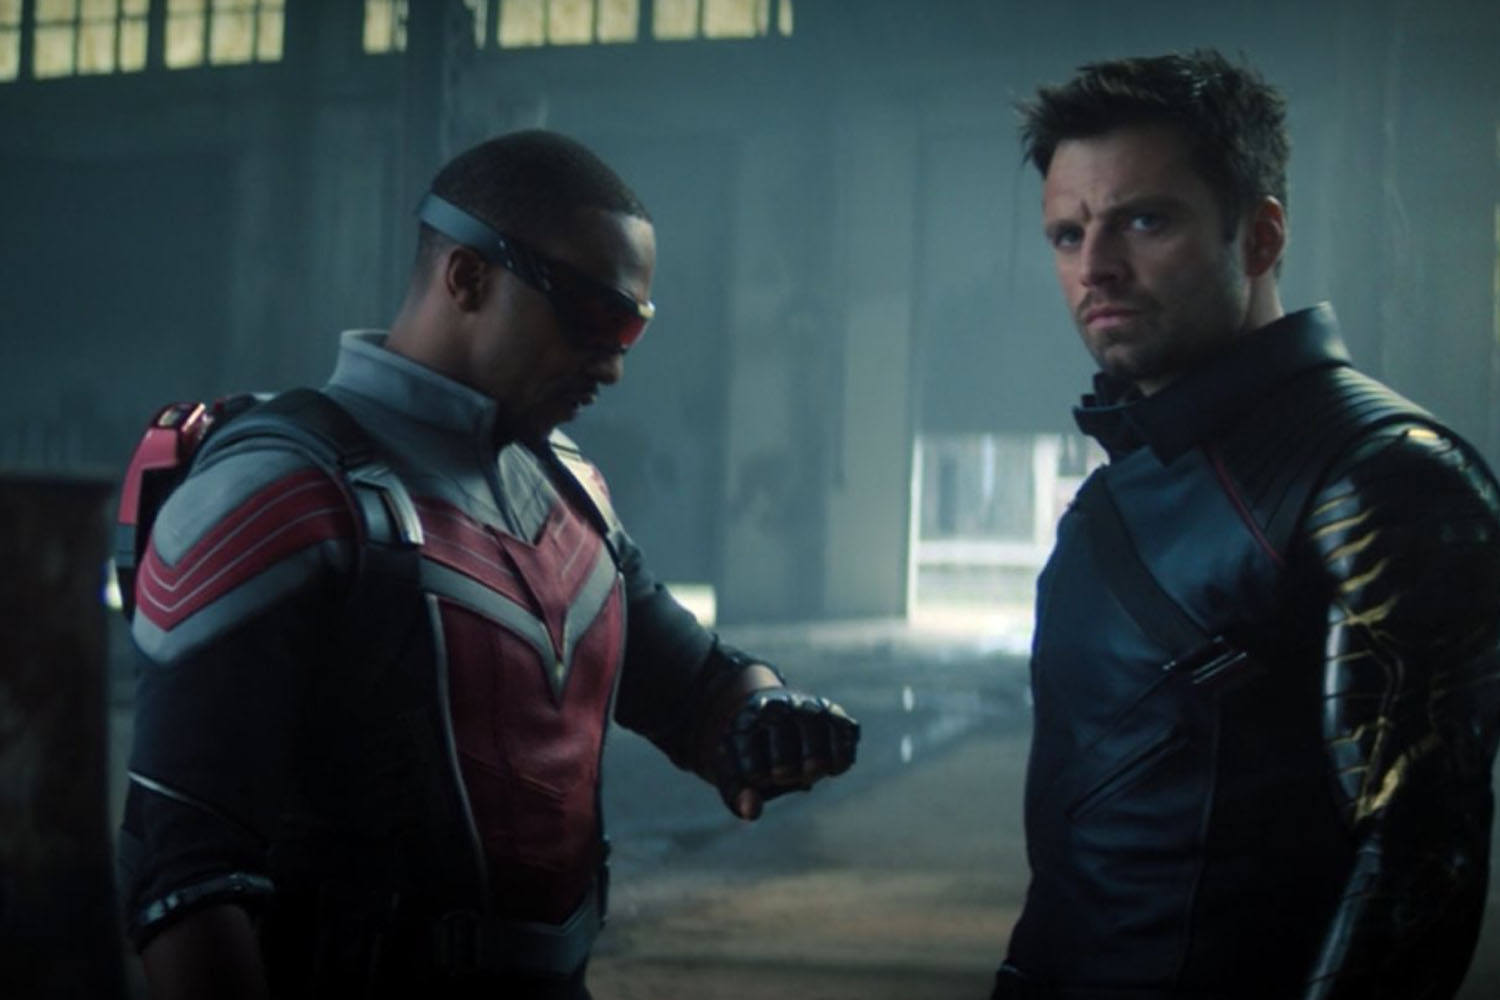 'The Falcon and the Winter Soldier' episode 3 review: Comic accuracy meets MCU ingenuity